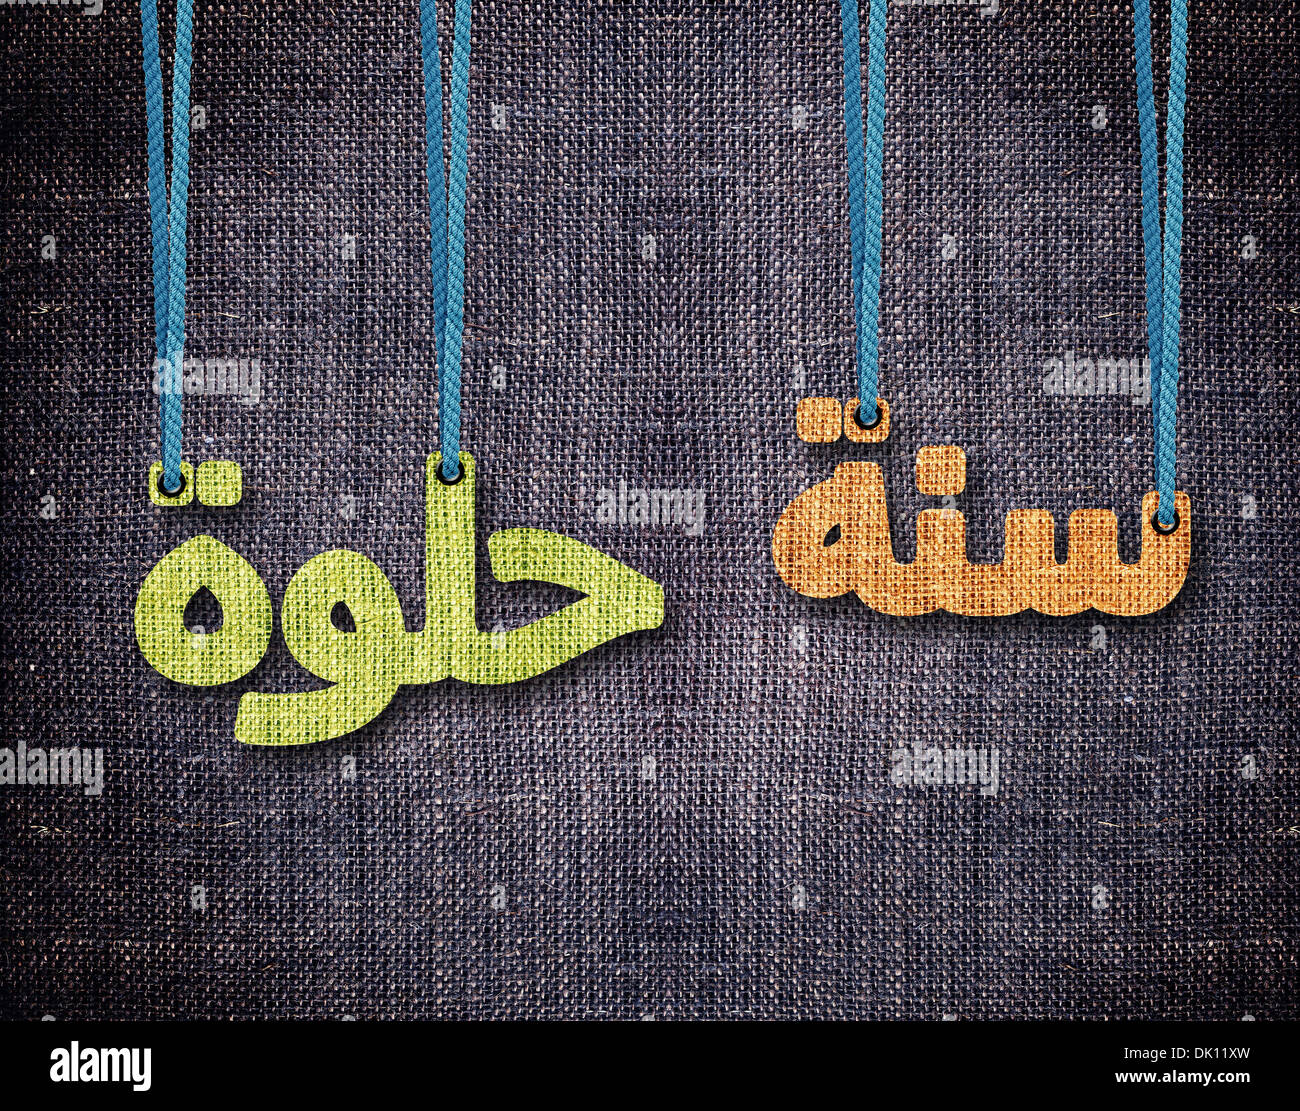 Wishing You A Nice New Year In Arabic Languageconceptual Image For